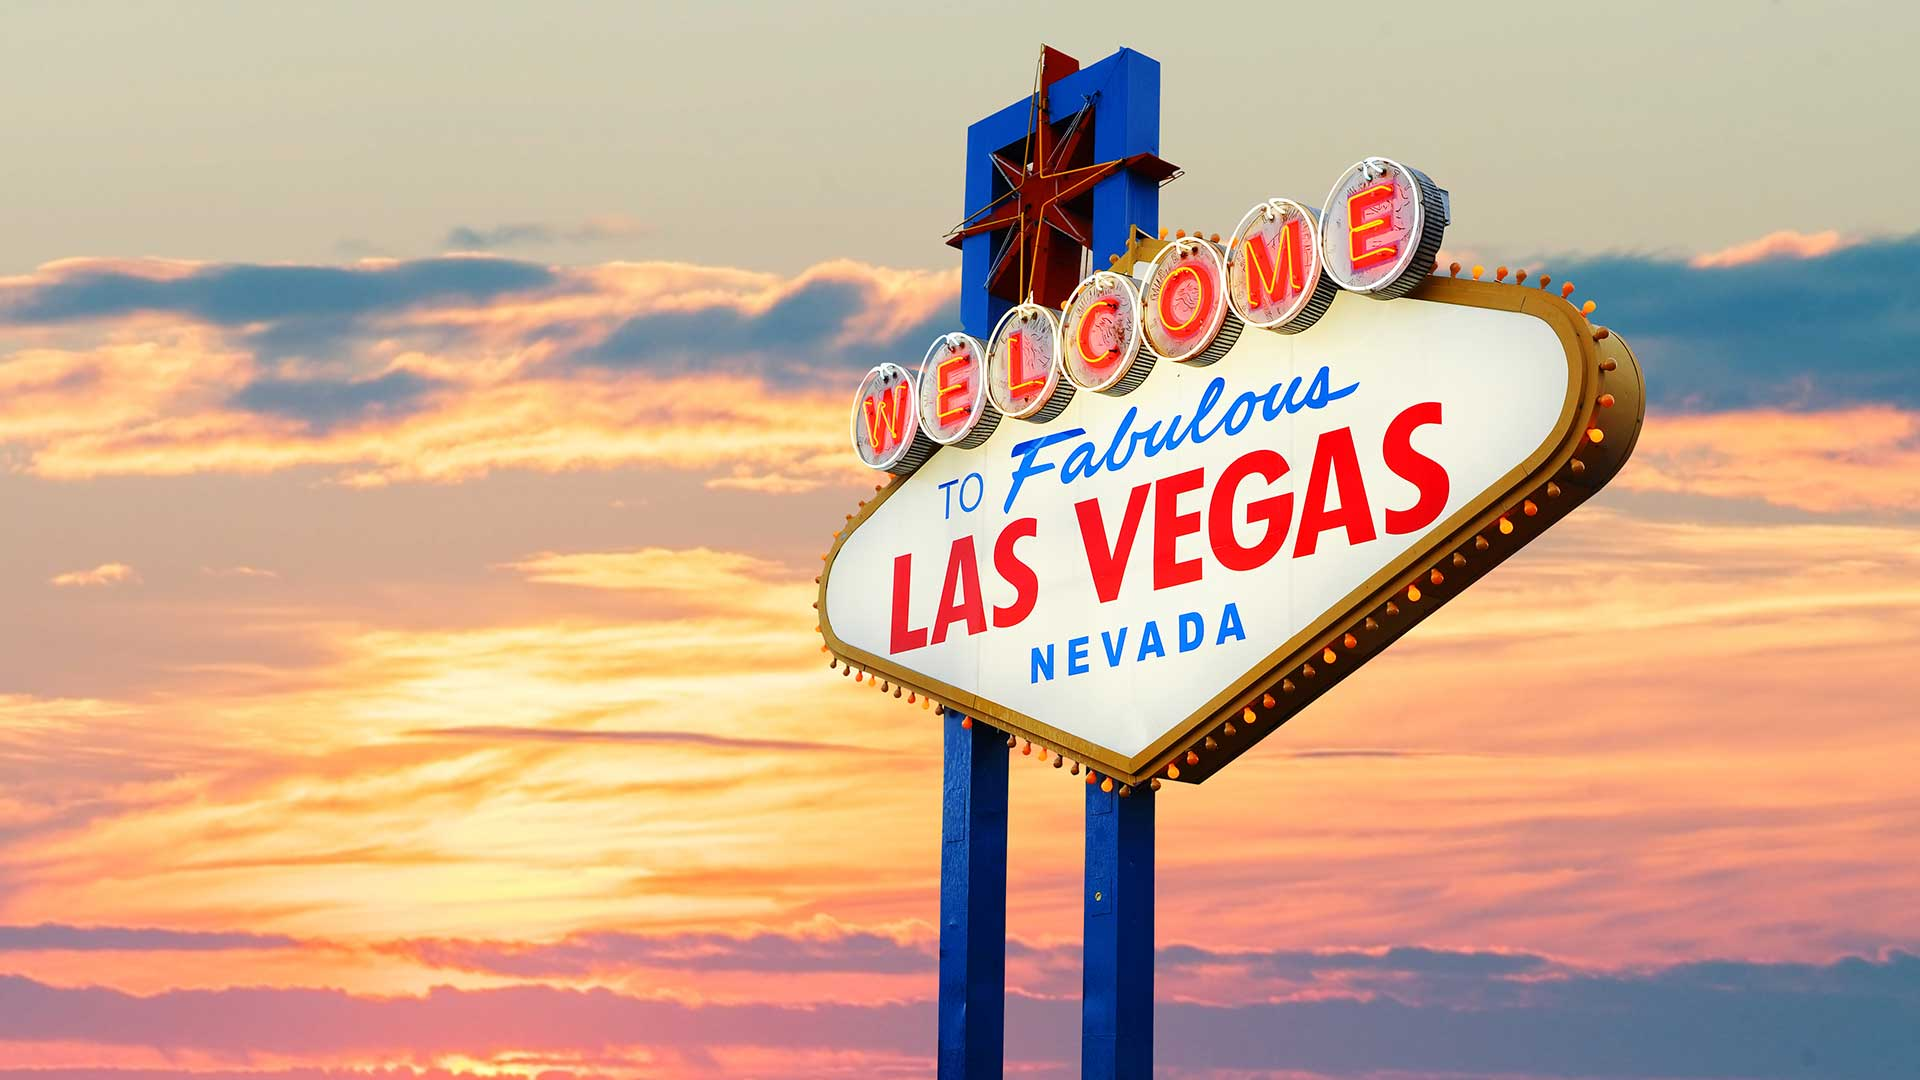 Shop CBD For Dogs And Cats In Las Vegas Welcome To Las Vegas Sign